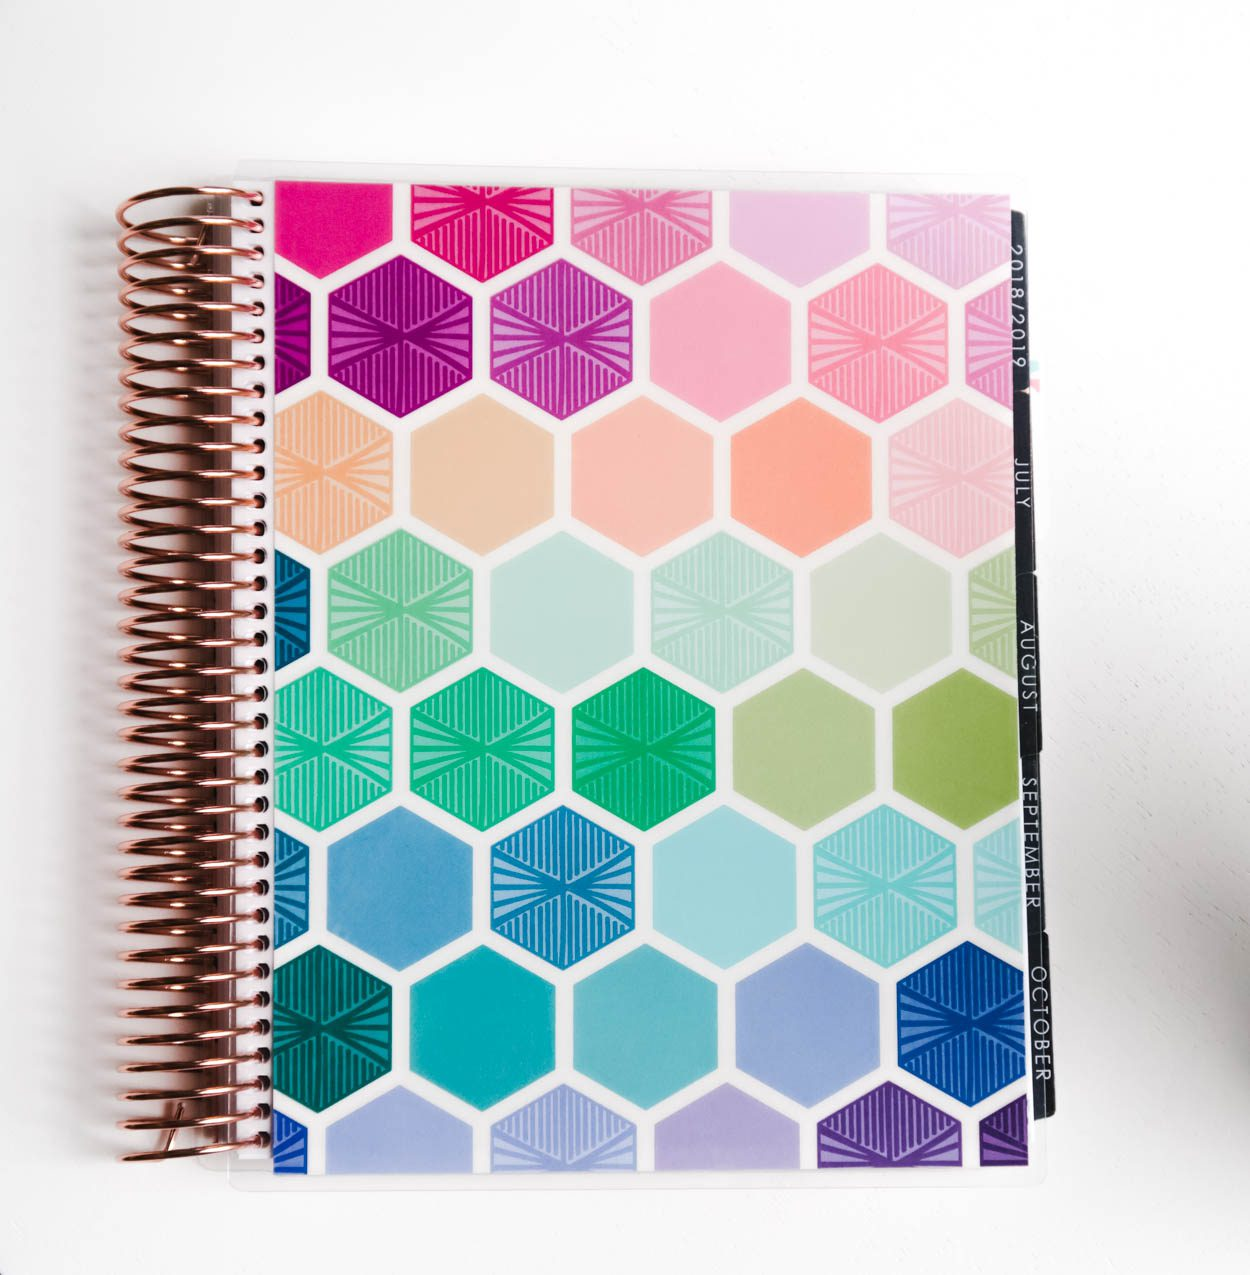 How I use my 2018-2019 Erin Condren Life Planner to help better manage my time, provide structure to my days and how it helps keep my ideas, projects and deadlines more organized! #planner #ErinCondren #Planning #Goals #GoalSetting #Organization